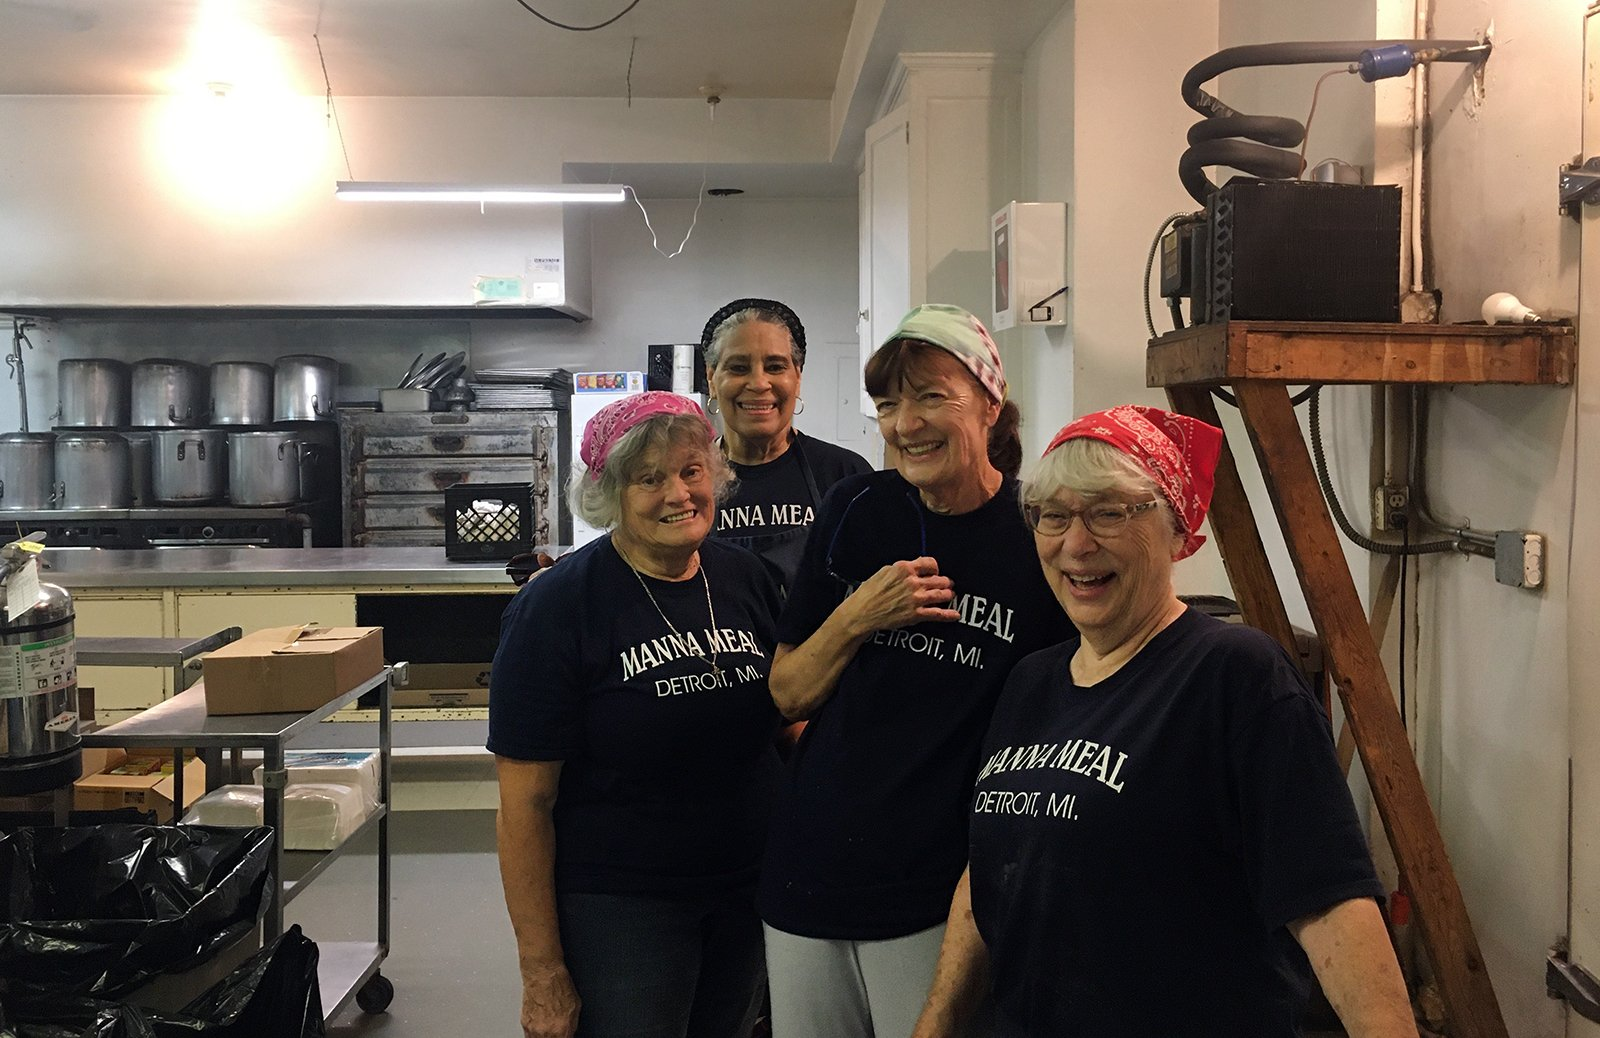 Manna Meal soup kitchen volunteers at St. Peter's Episcopal Church, Friday, July 30, 2021, in Detroit. RNS photo by Renée Roden